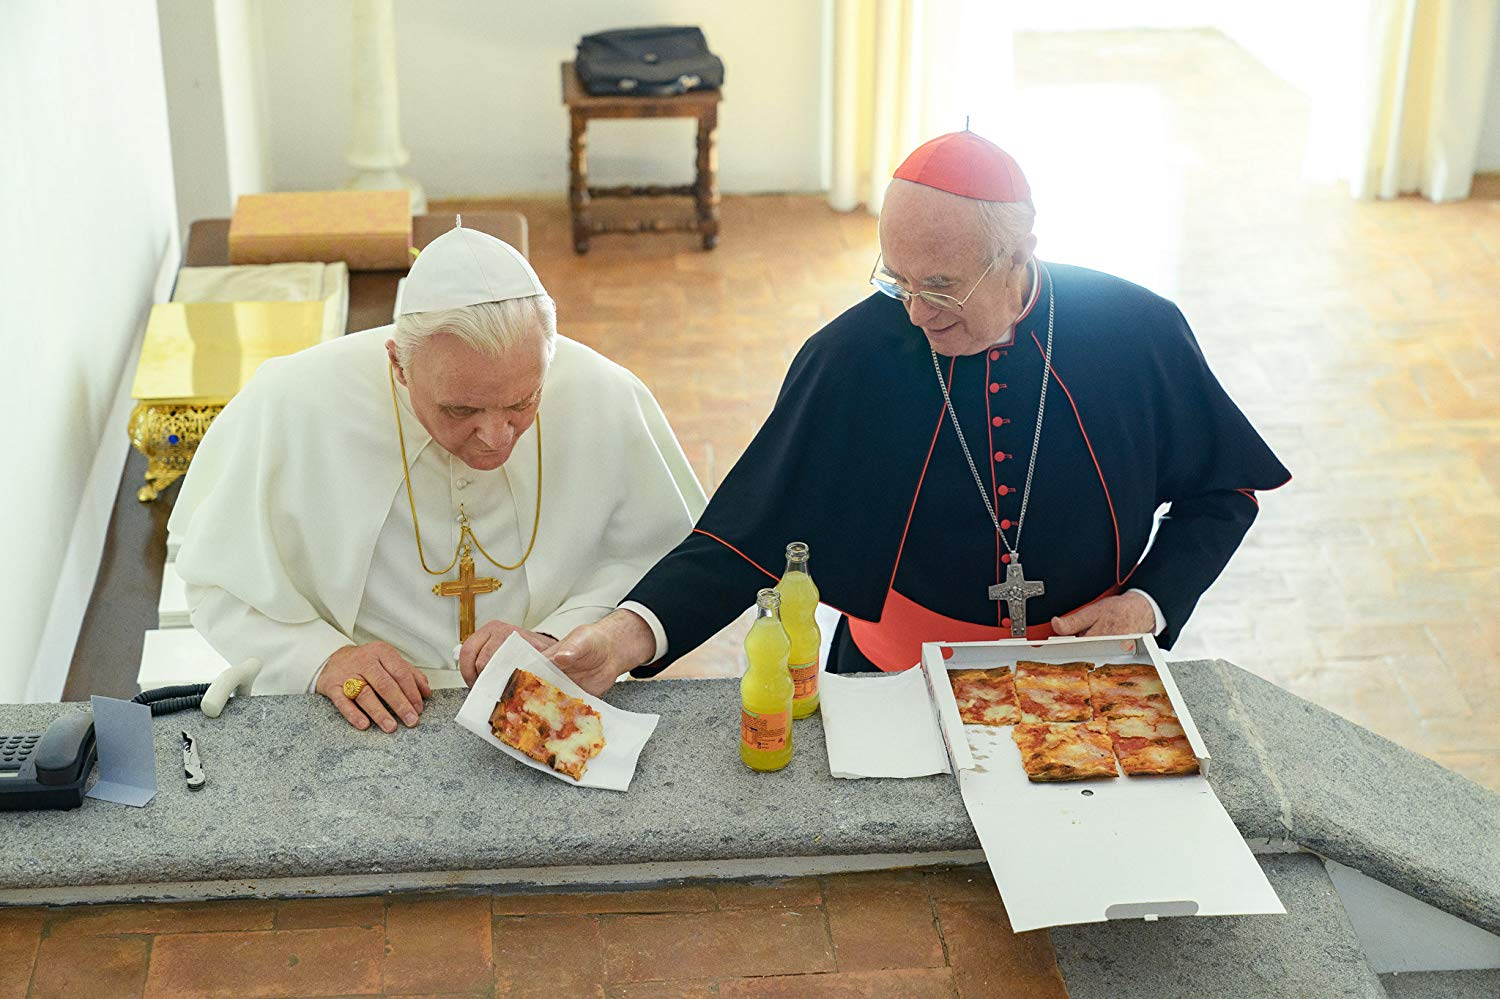 Still from movie Two Popes